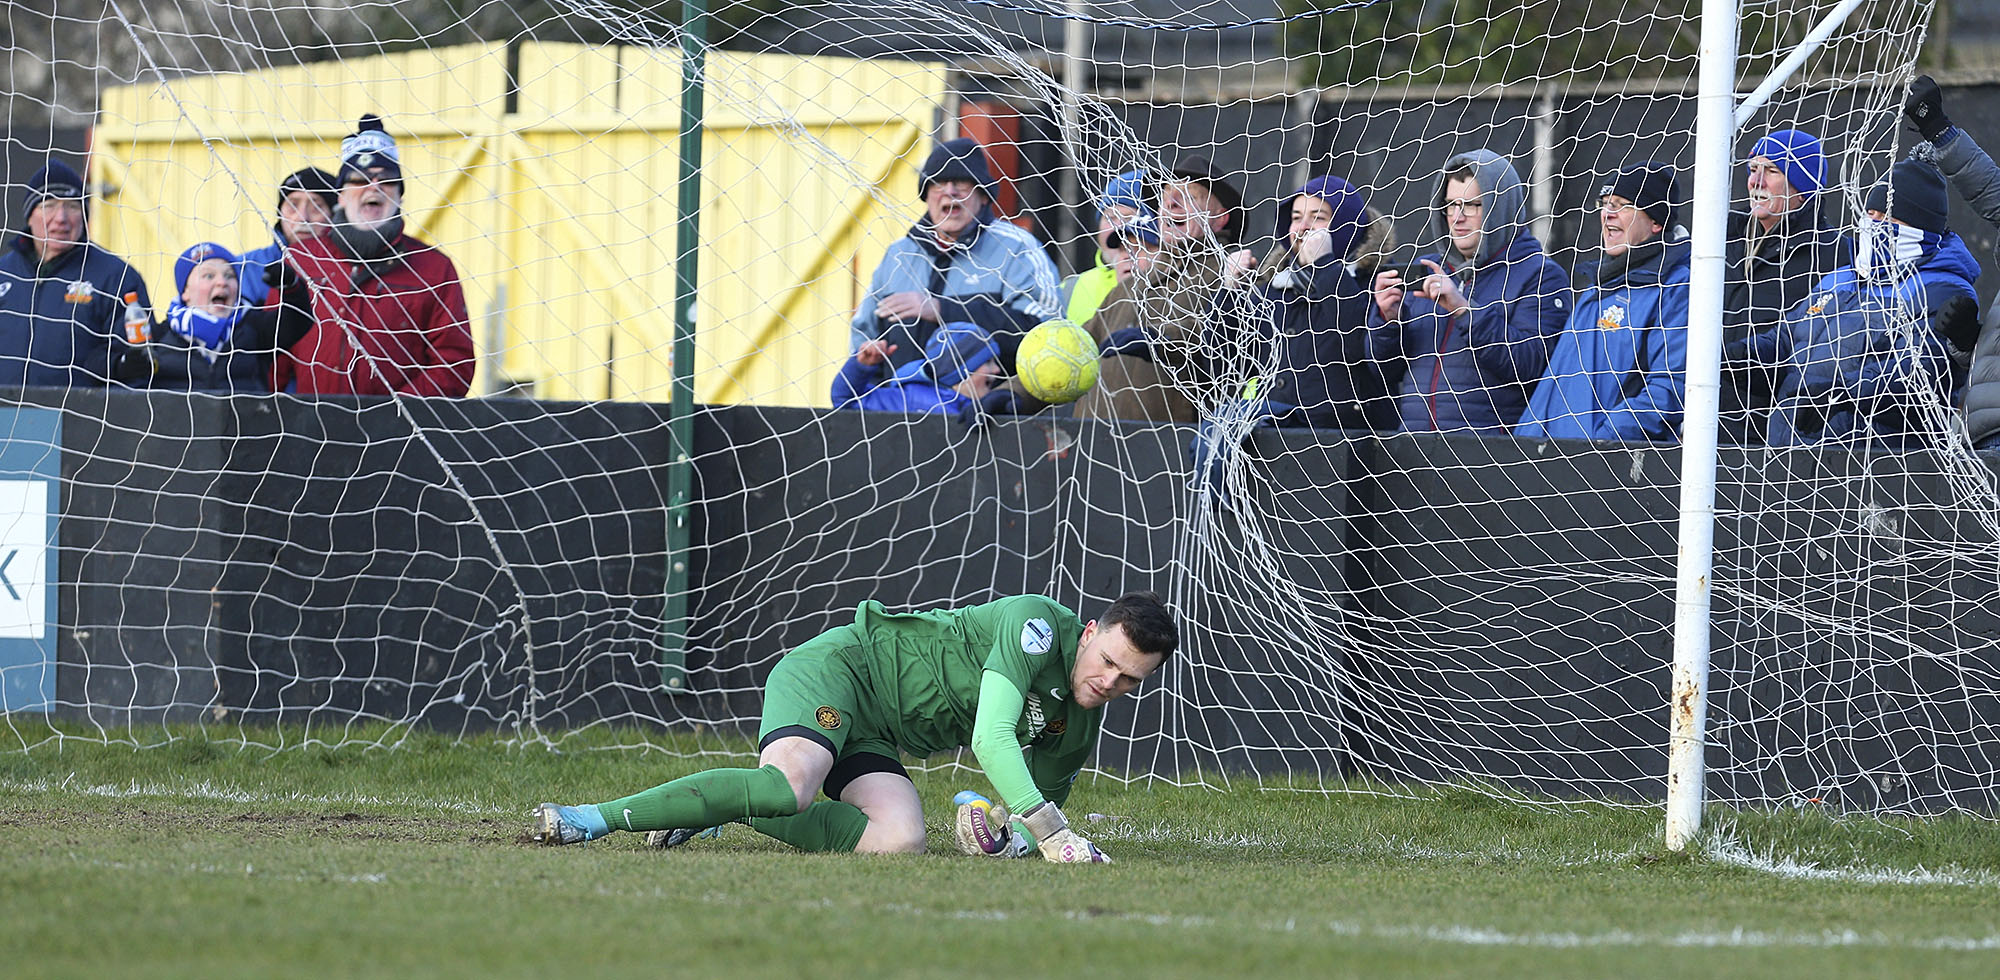 Glenavon Grind Out Win at Carrick